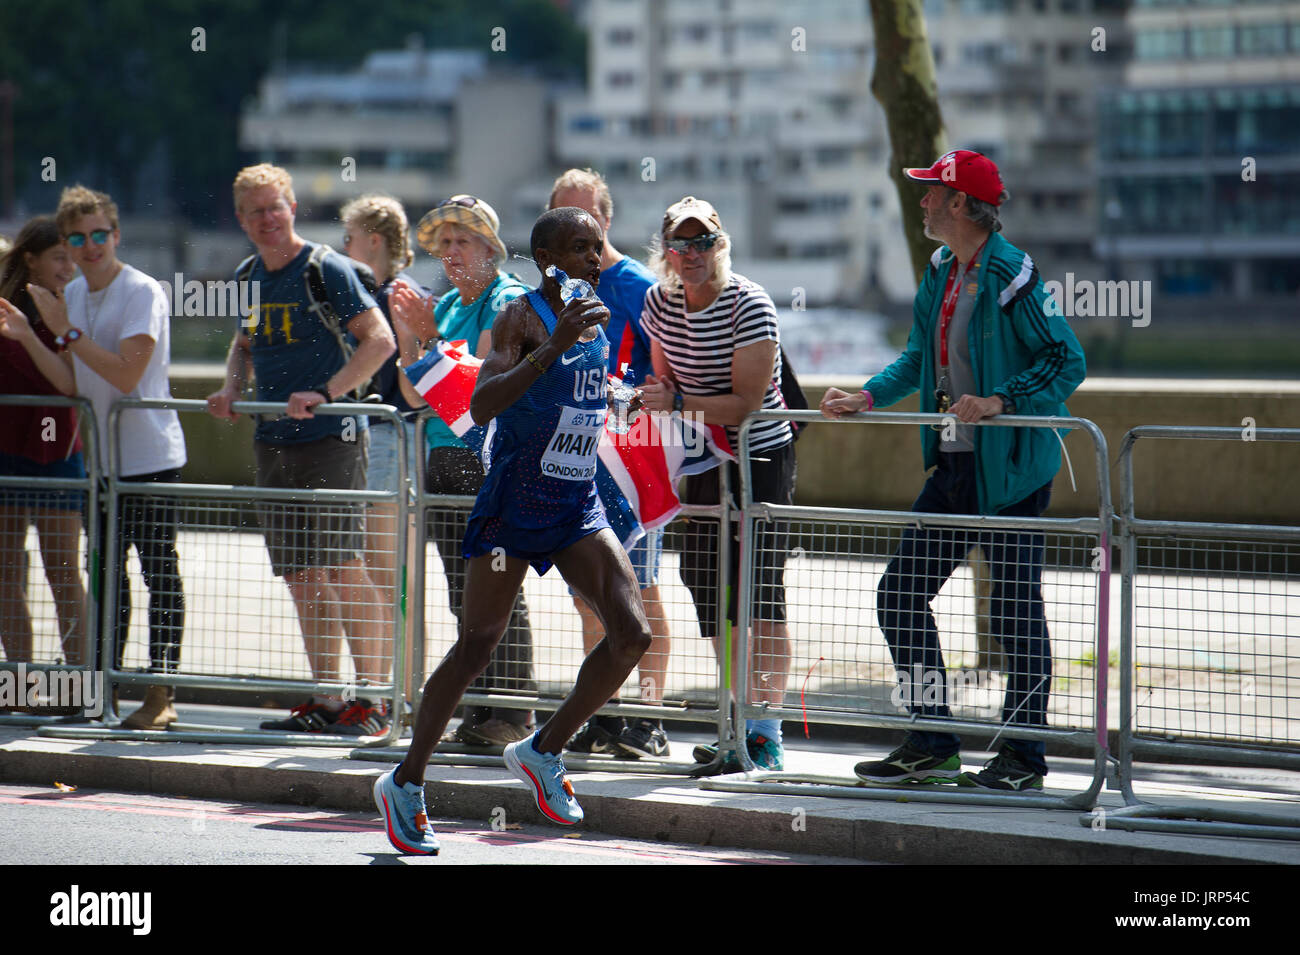 London, UK. 6th August, 2017. Augustus Mayo (USA) taking a water refreshment at the IAAF World Athletics Championships Men's Marathon Race Credit: Phil Swallow Photography/Alamy Live News - Stock Image